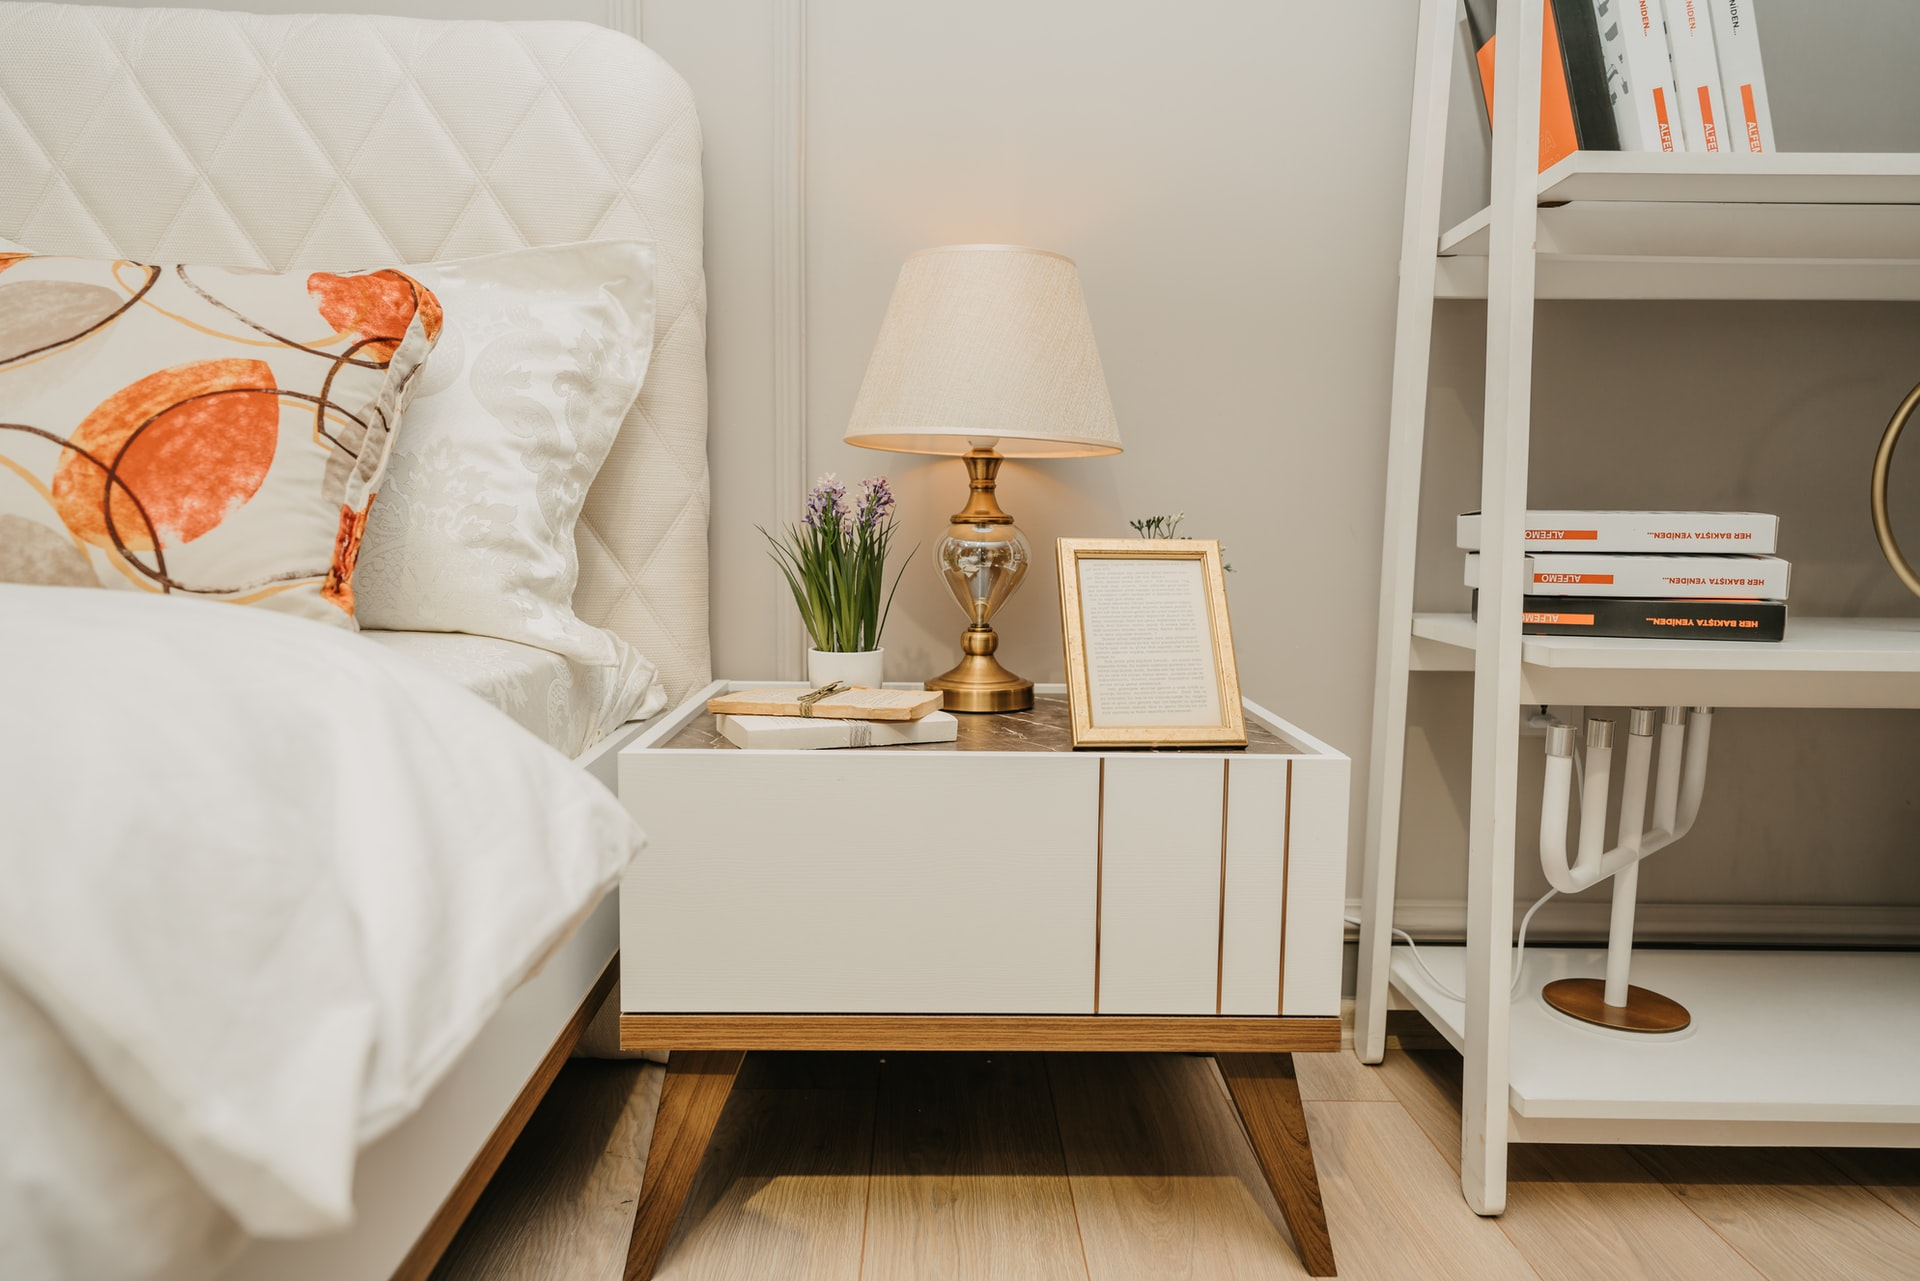 Bedroom layout styled by a professional organizer and interior stylist